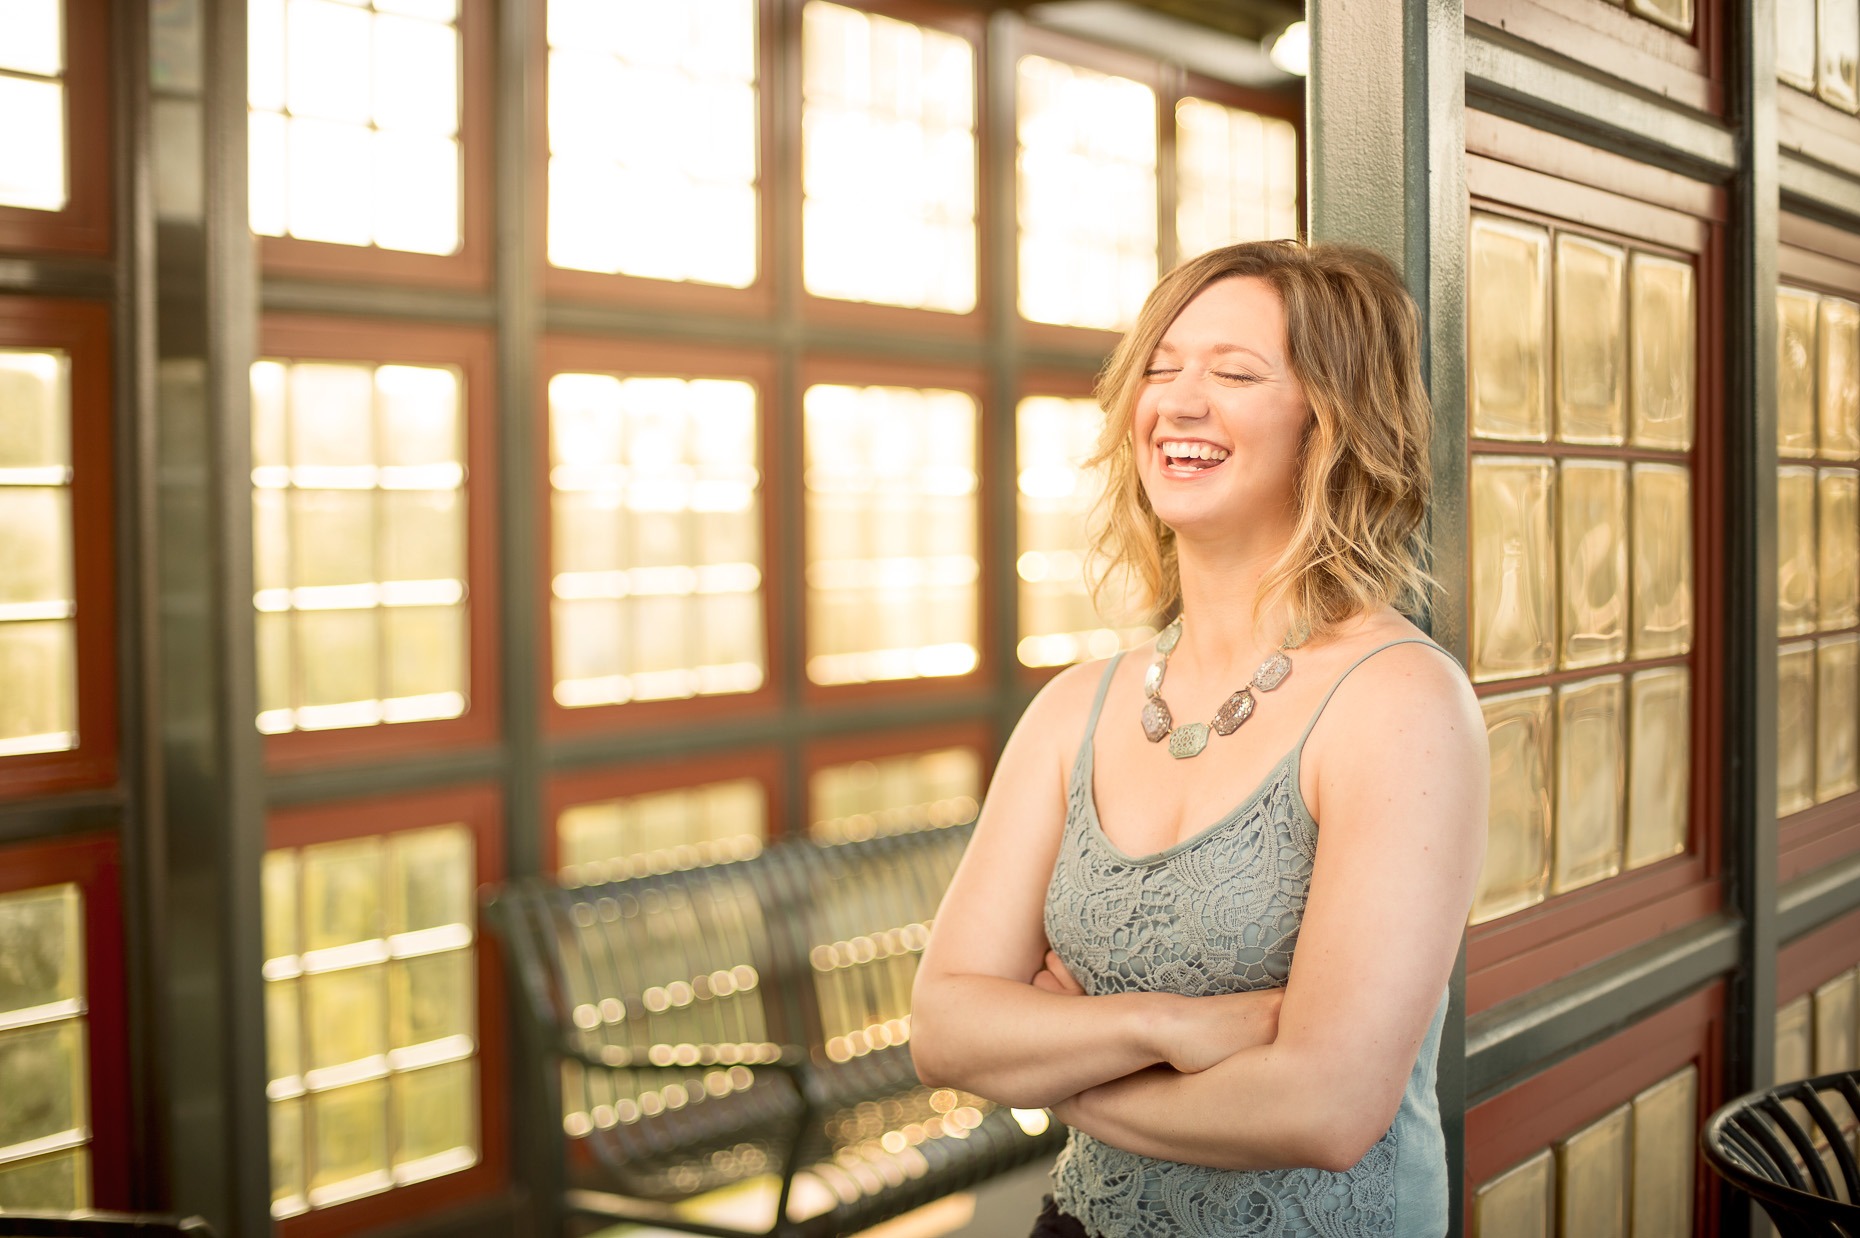 commercial-portraits-woman-laughing-sun